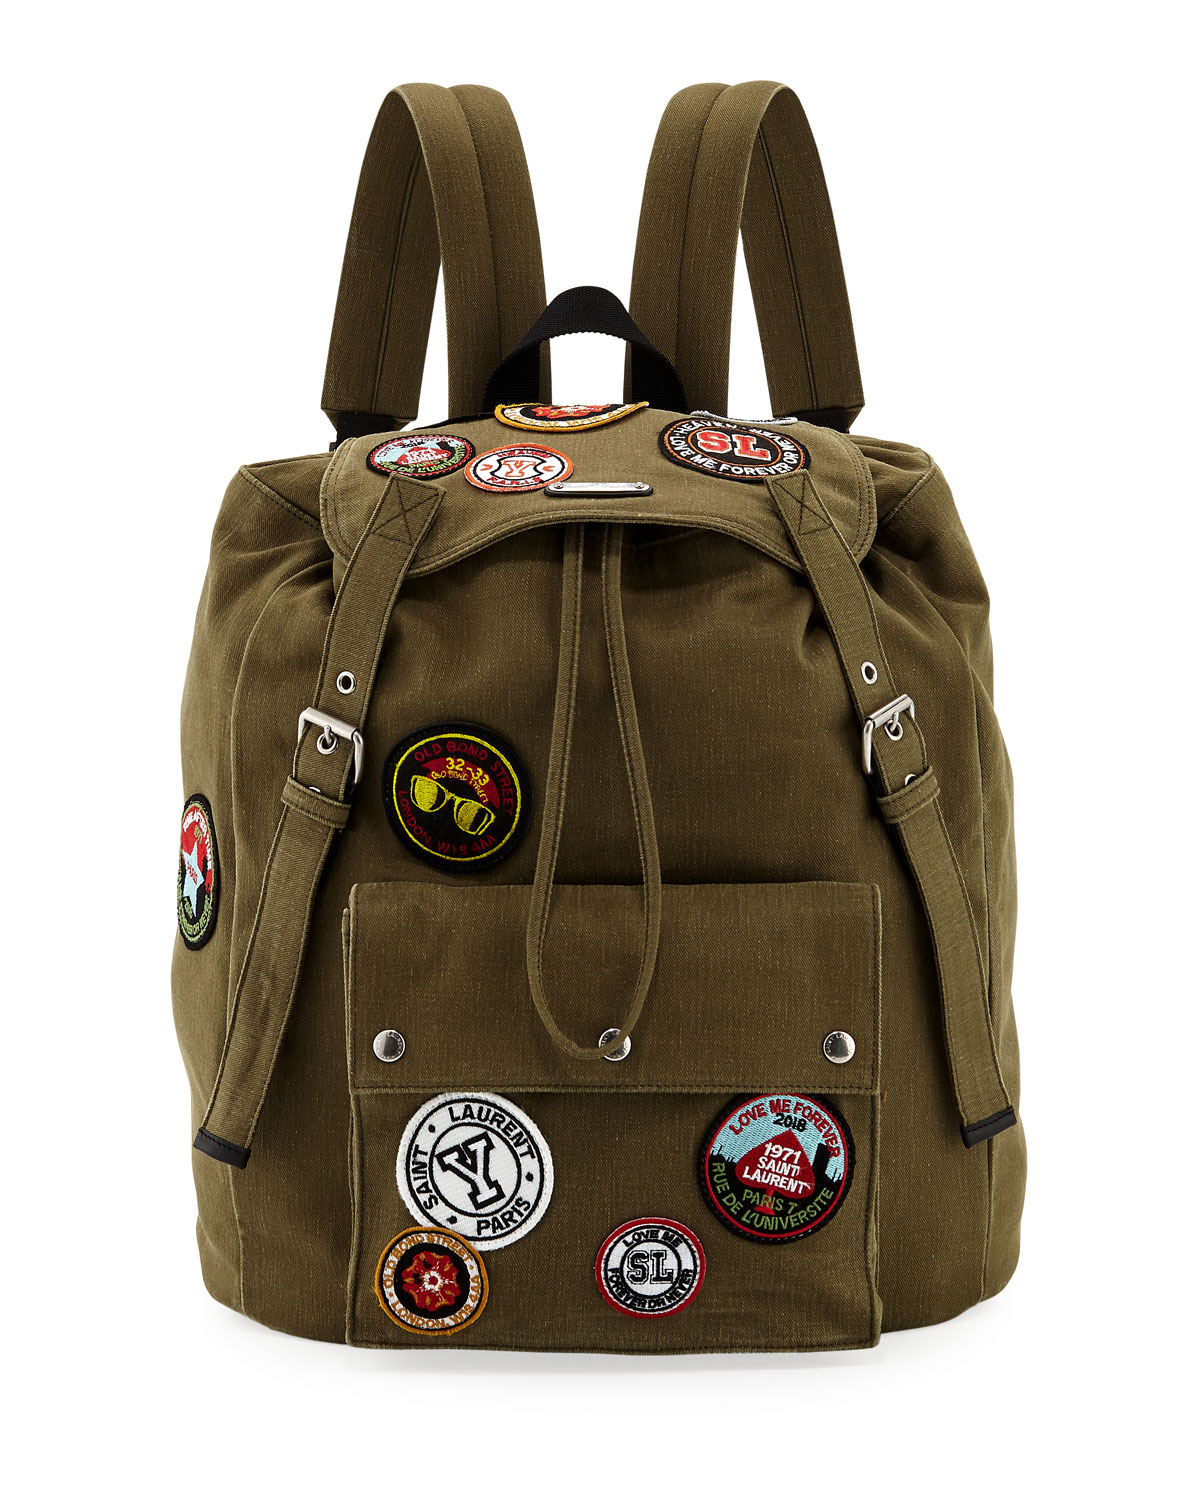 Noe Patched Canvas Backpack